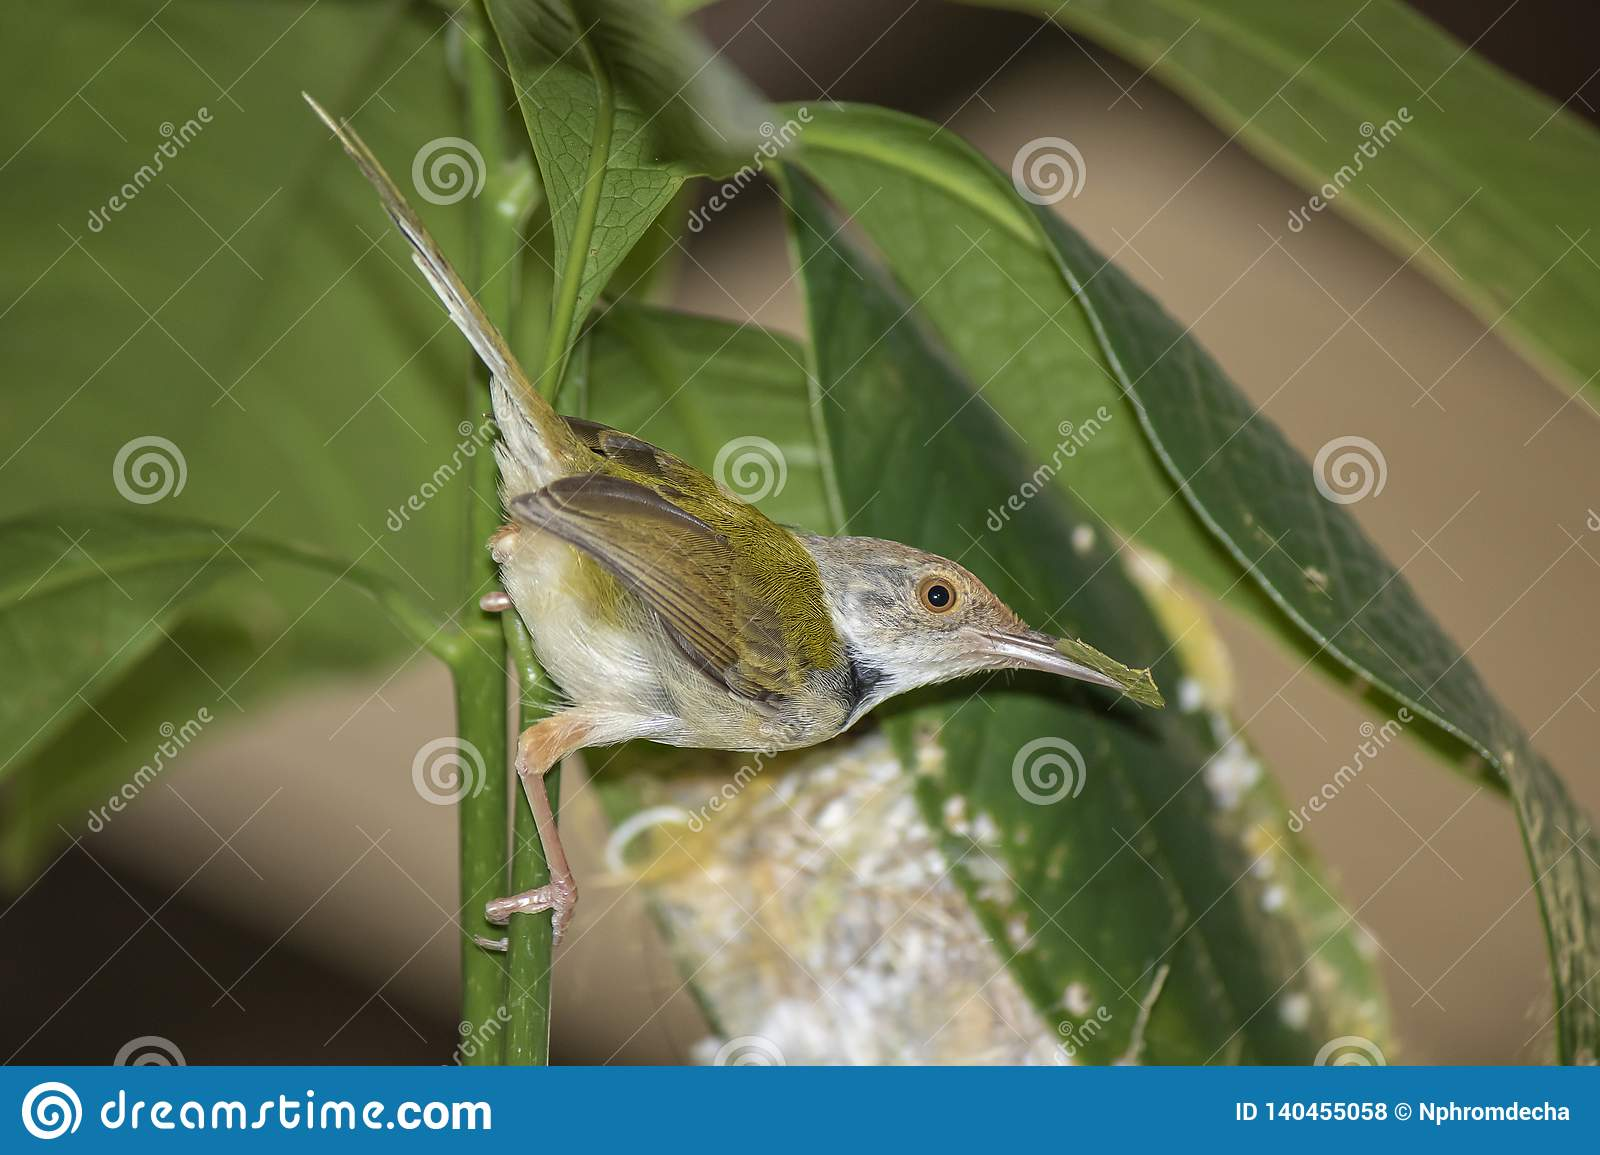 Common Tailor bird Orthotomus sutorius feeding the baby bird to the nest in the back